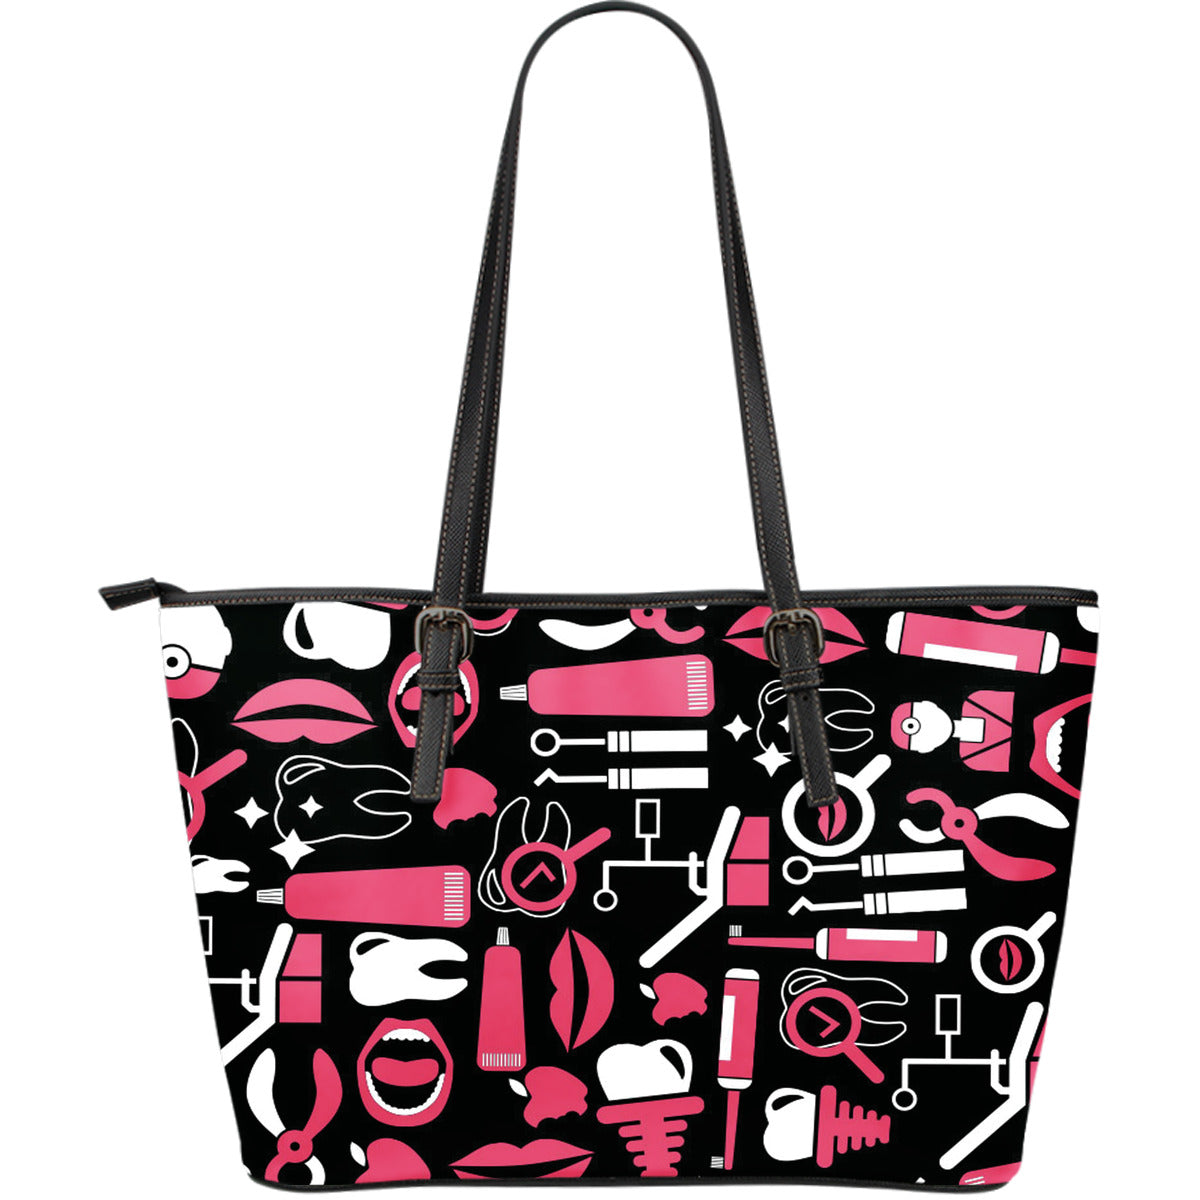 Dental Hygienist Large Leather Tote Bag